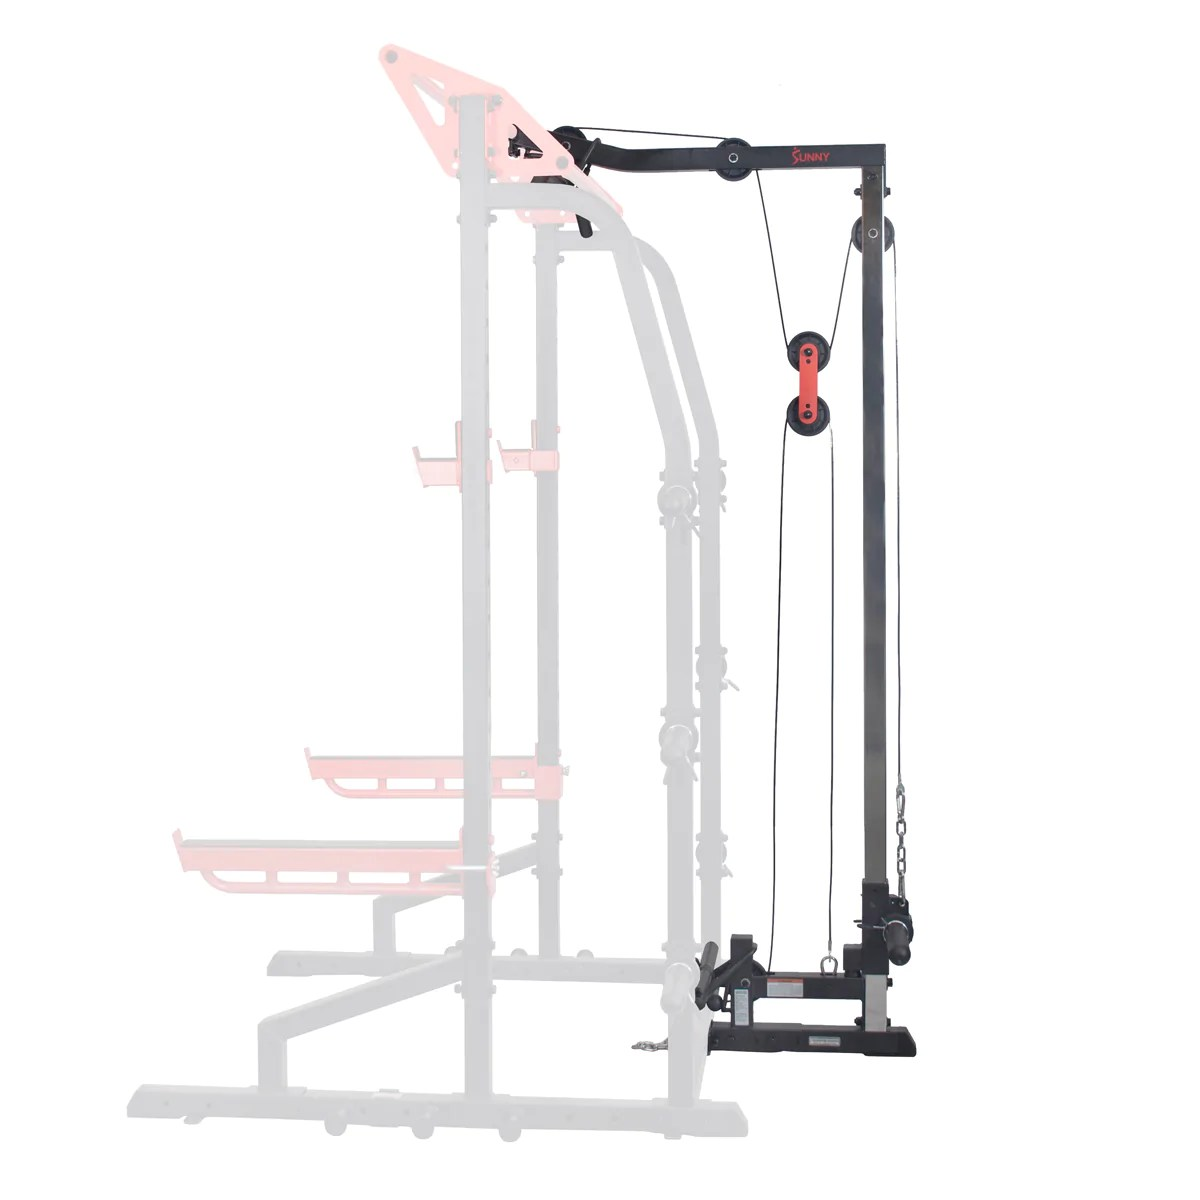 lat pull down attachment pulley system for power racks